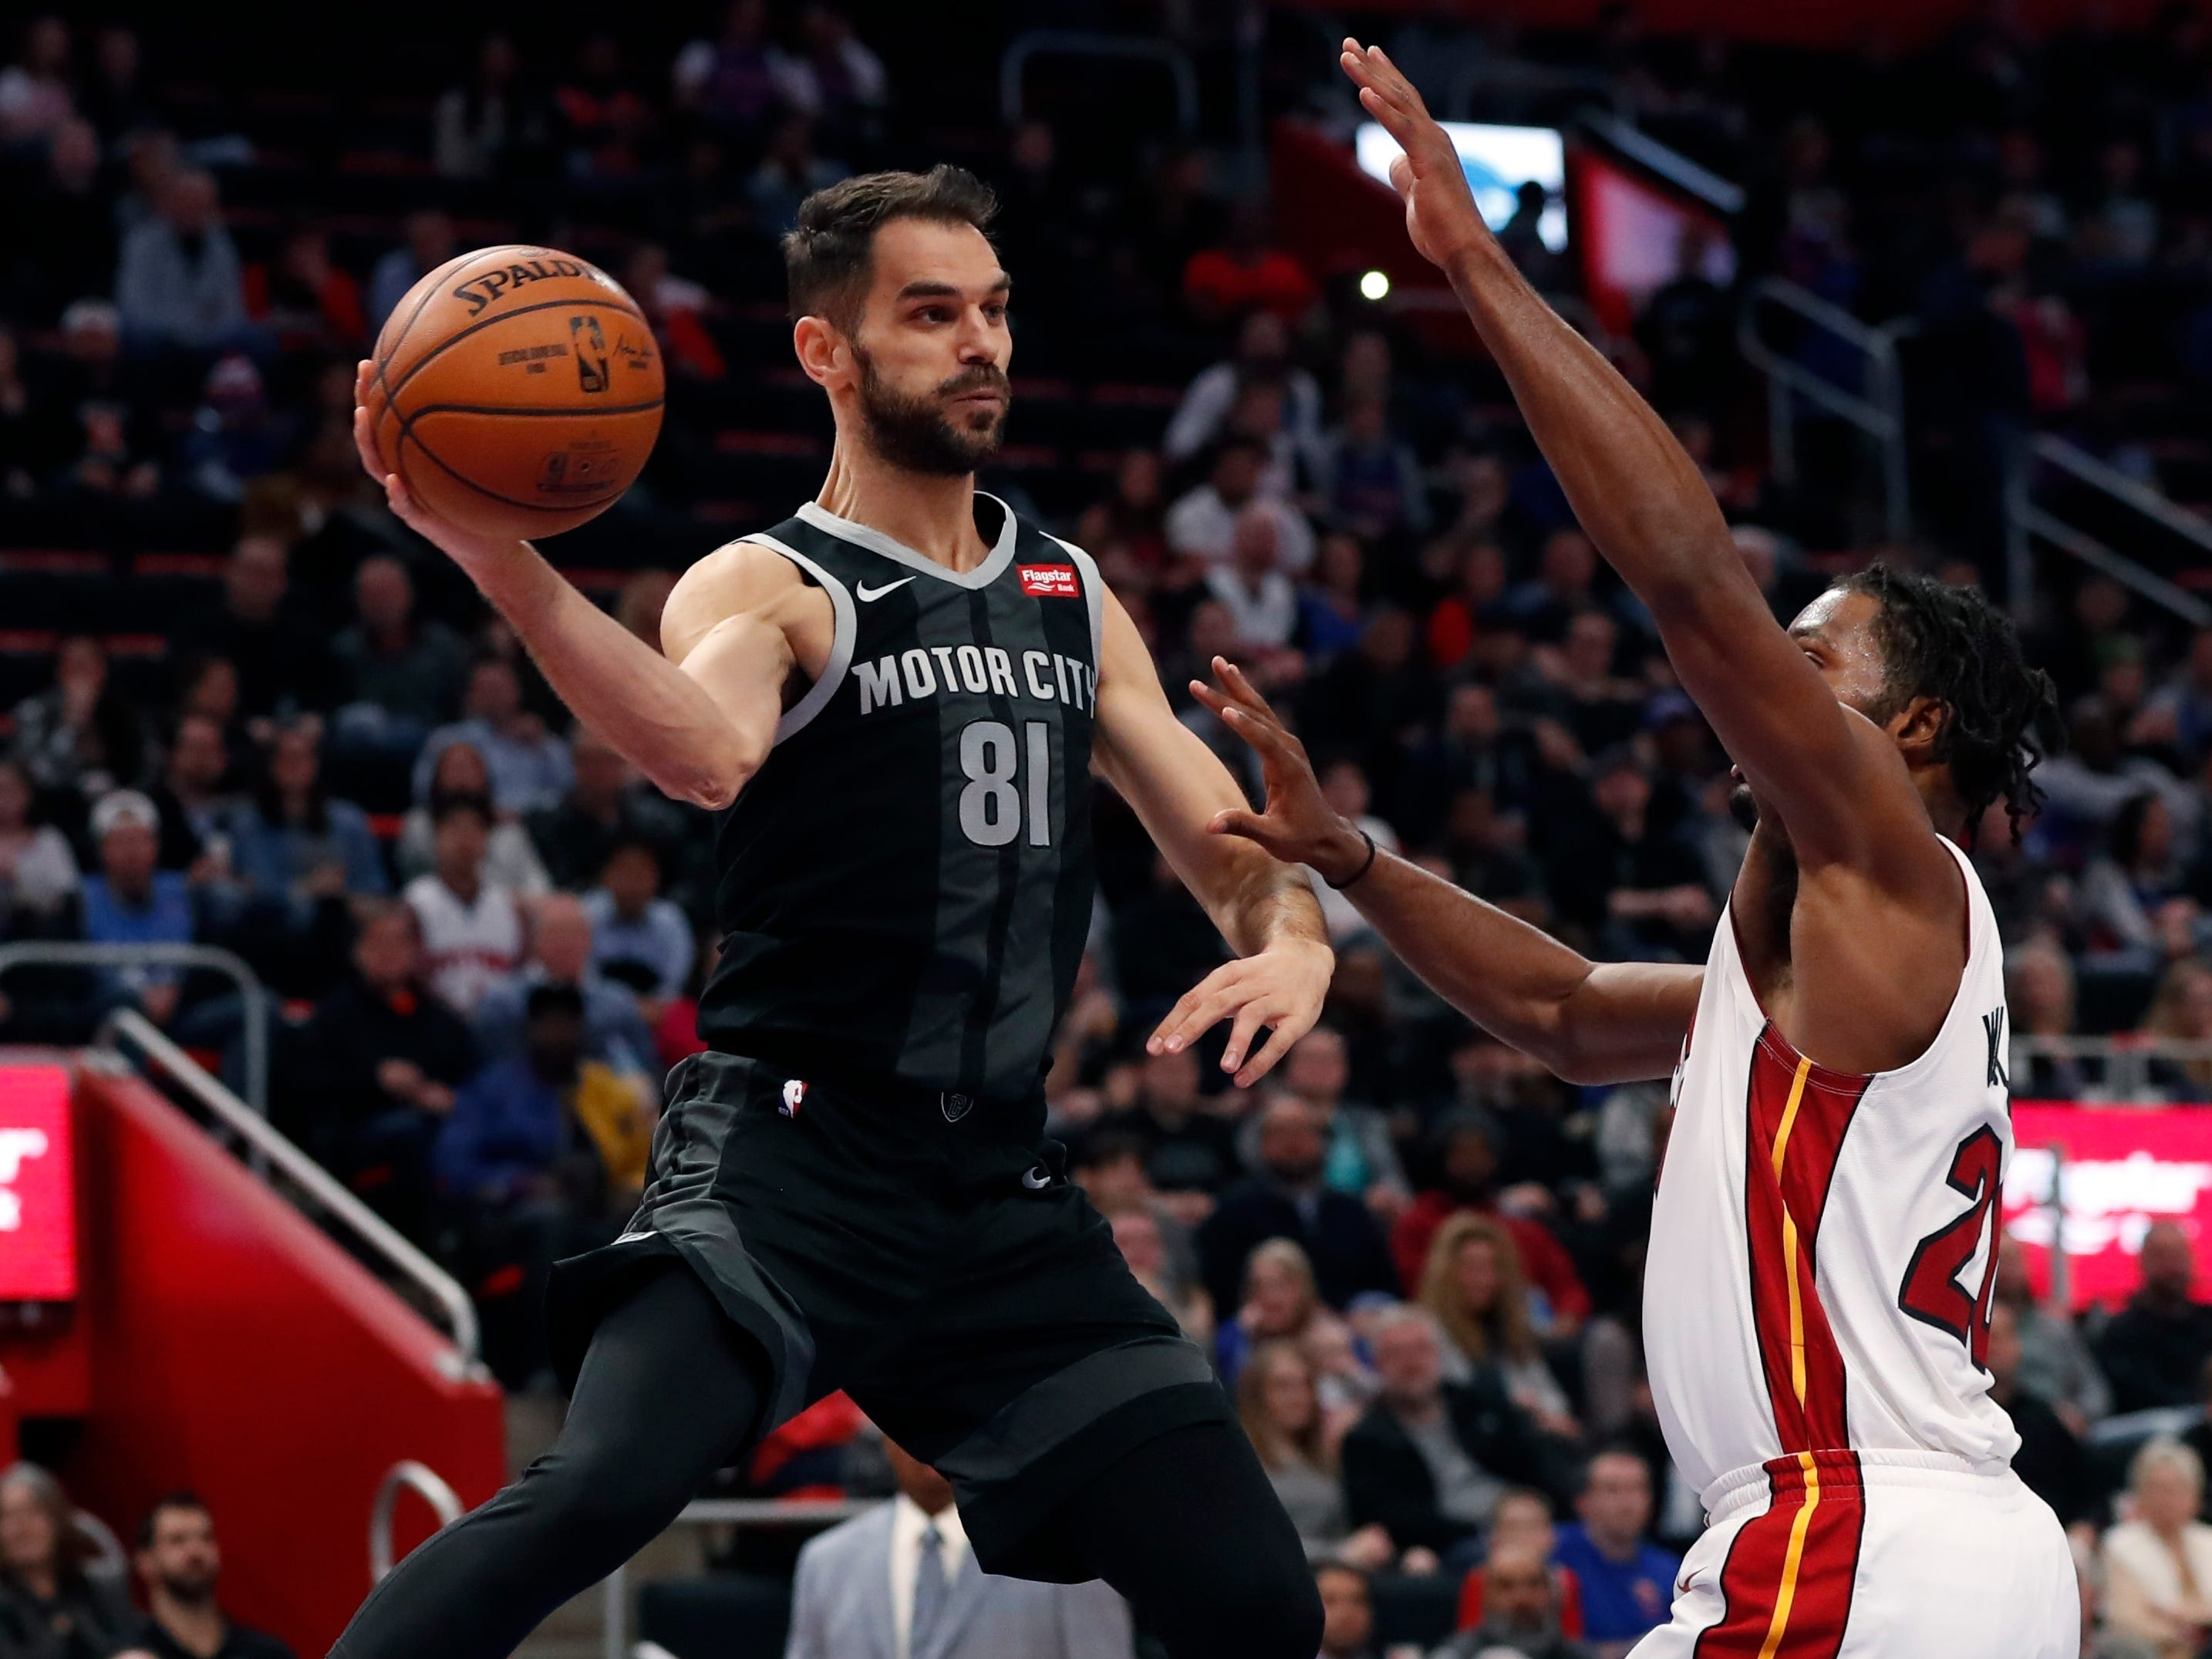 Detroit Pistons guard Jose Calderon (81) passes as Miami Heat forward Justise Winslow defends during the first half.